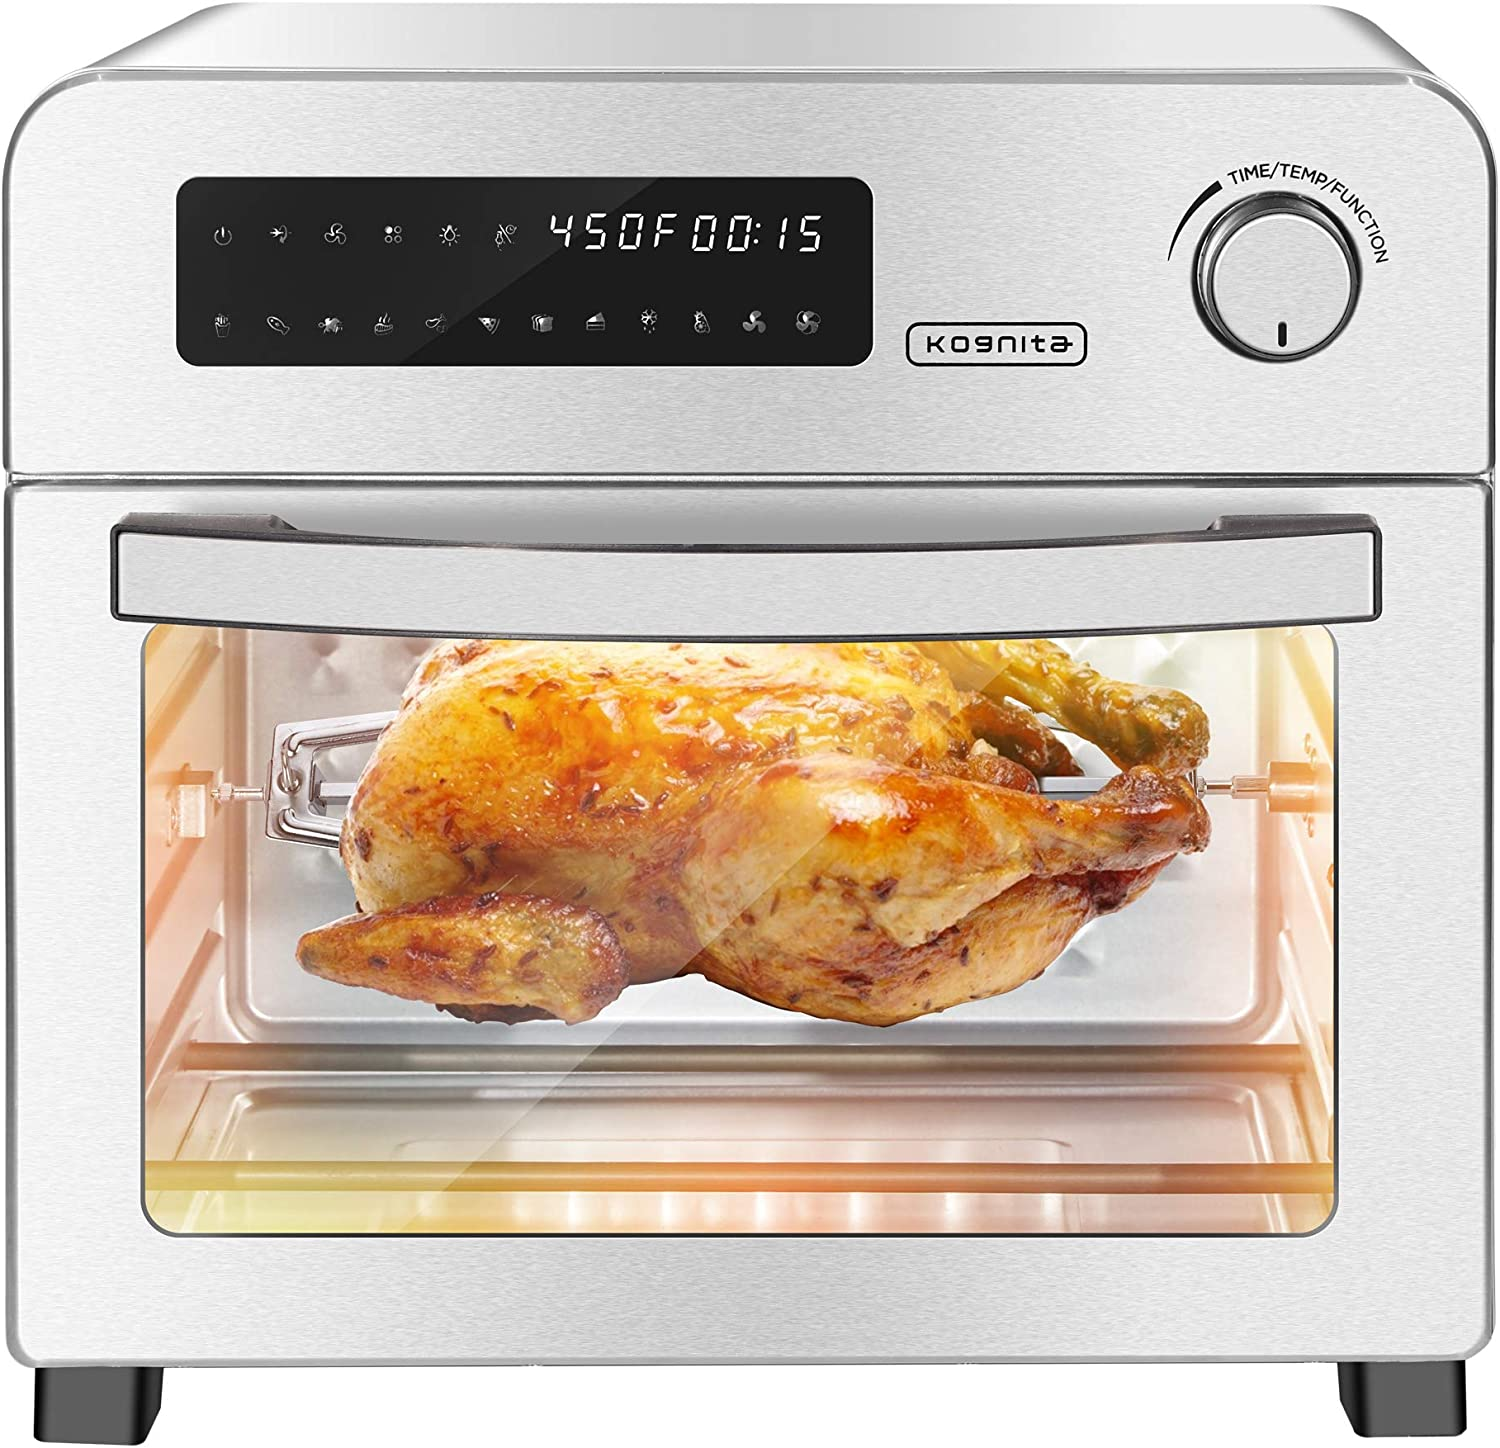 24.3 QT Air Fryer Toaster Oven - 10-in-1 Convection Oven Countertop,1700W Hot Air Fryer Oven with Rotisserie and Racks,Large Air Fryer for Family,Stainless Steel Body, LED Digital Touchscreen,ETL Certified